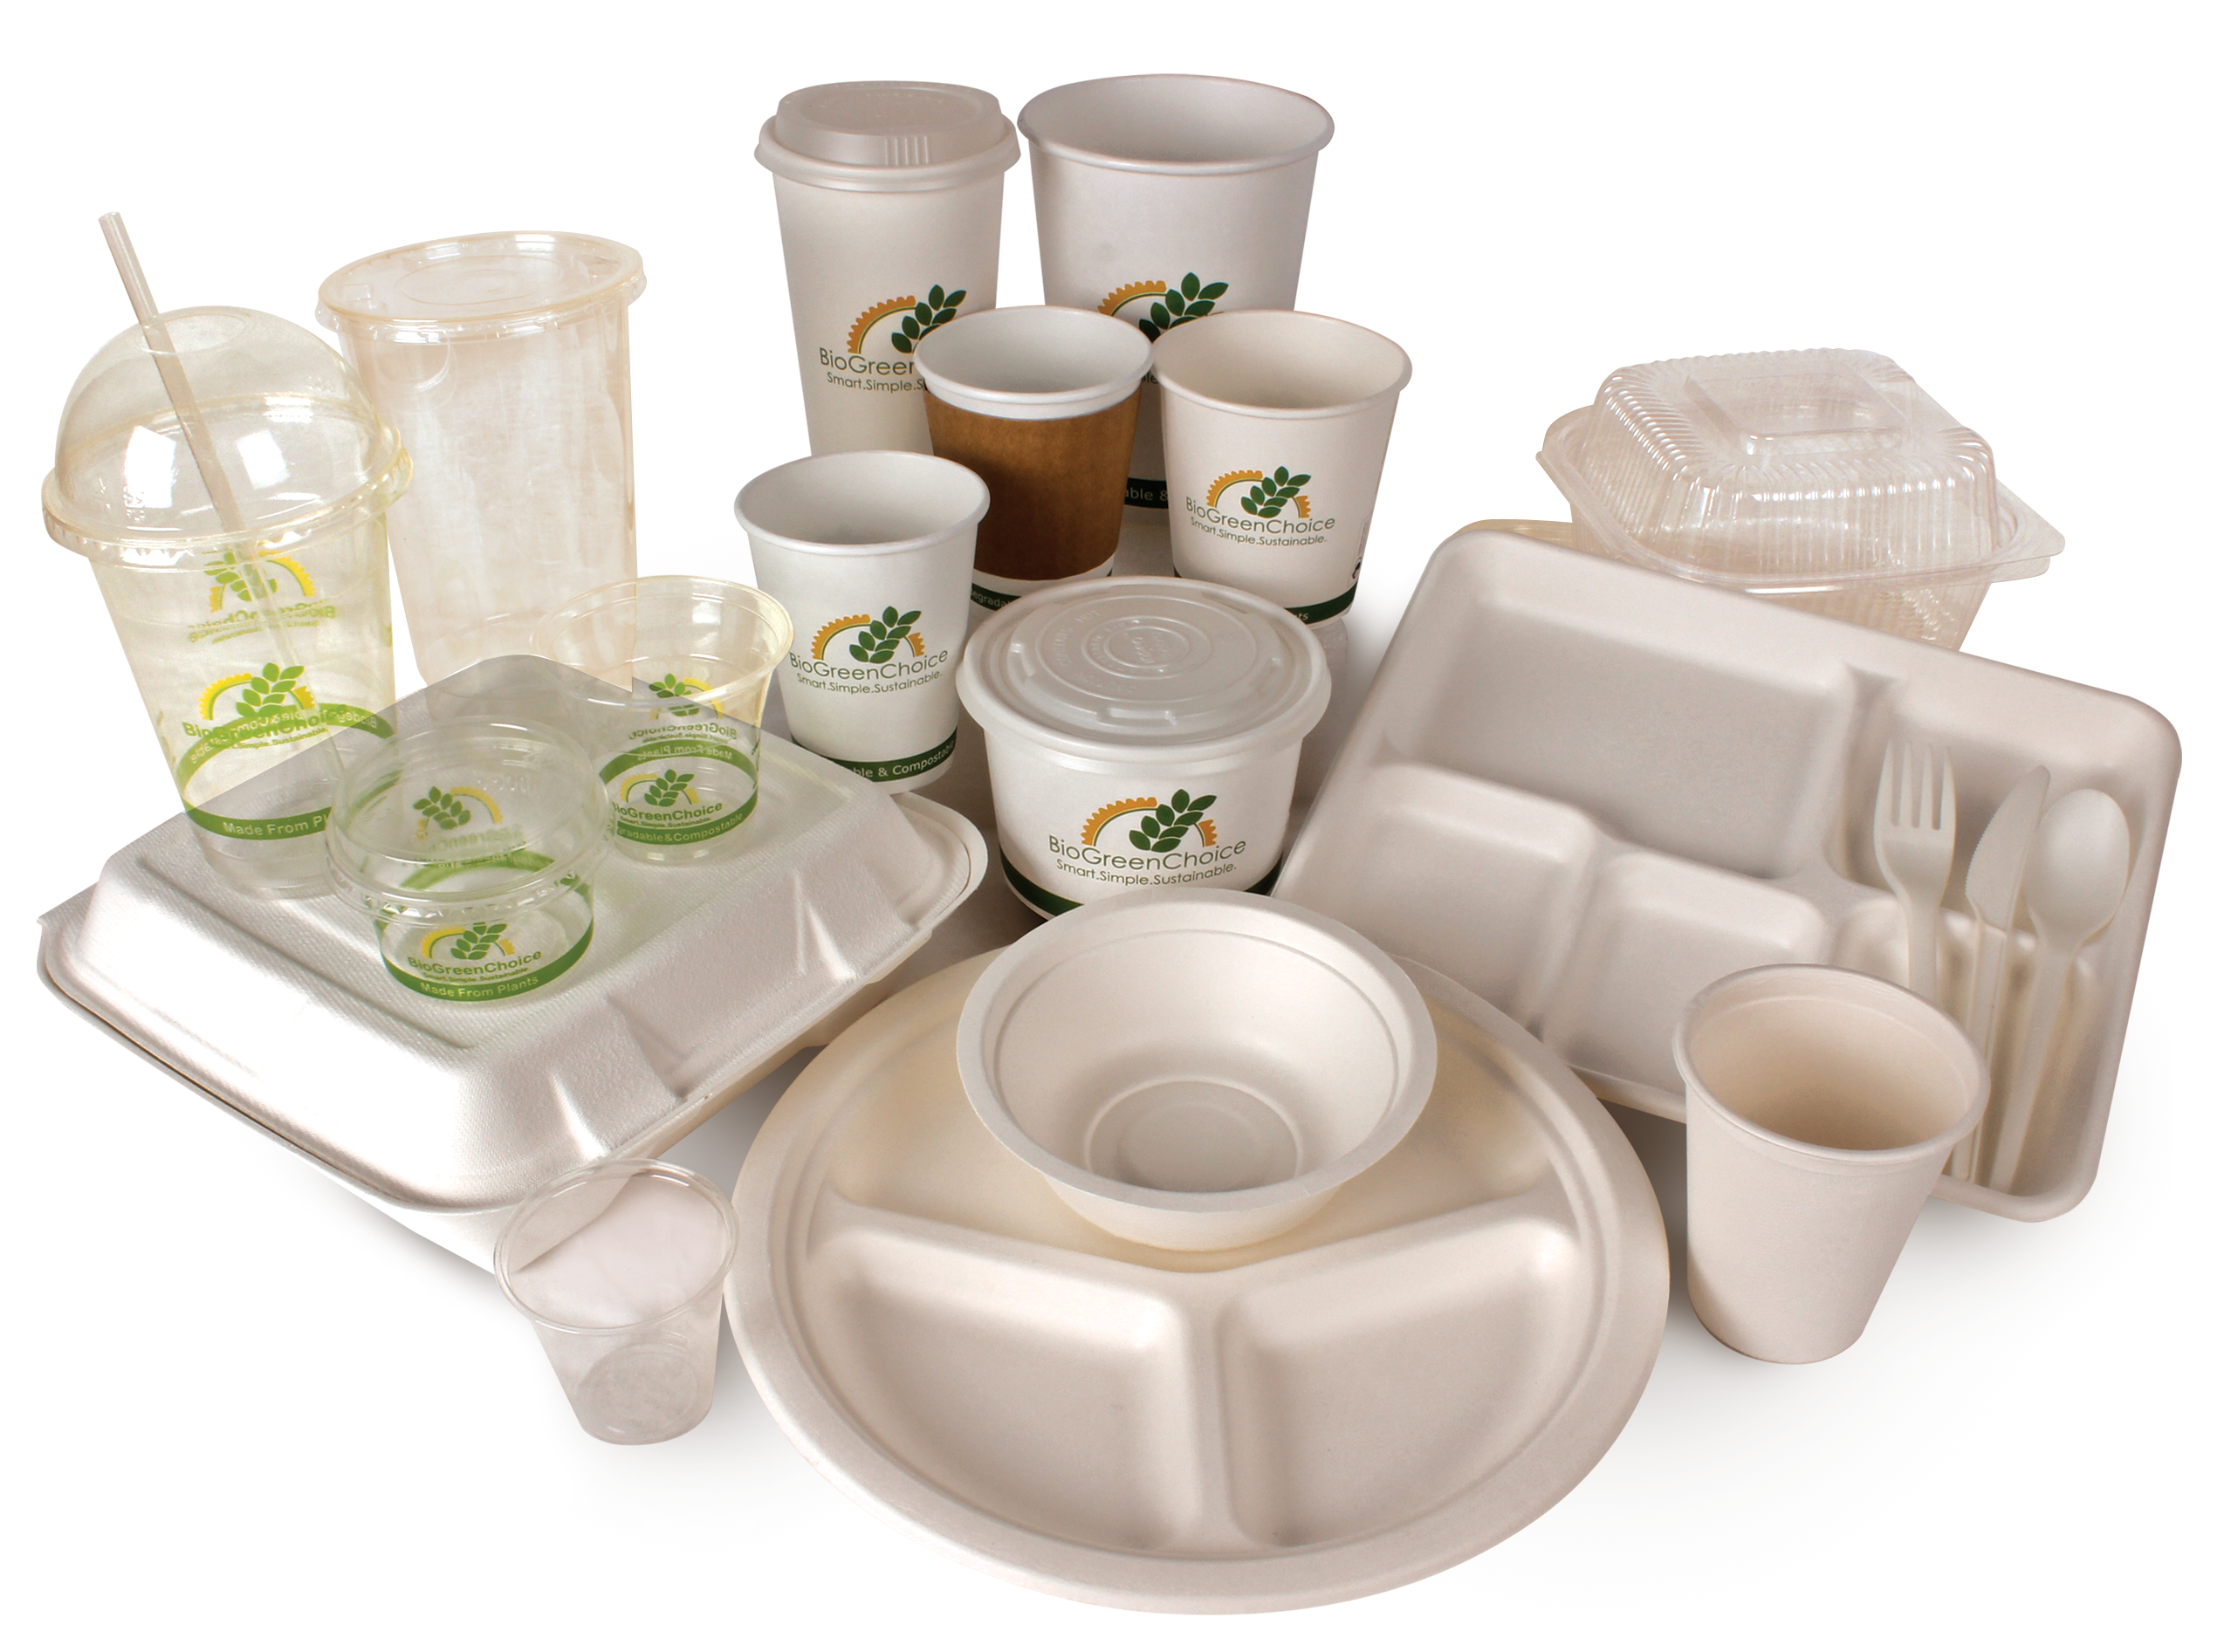 Visit Our Site To Purchase Catering Disposable Products For Your Shop Party Or Event Or Any Other Occasi Biodegradable Products Disposable Disposable Plates